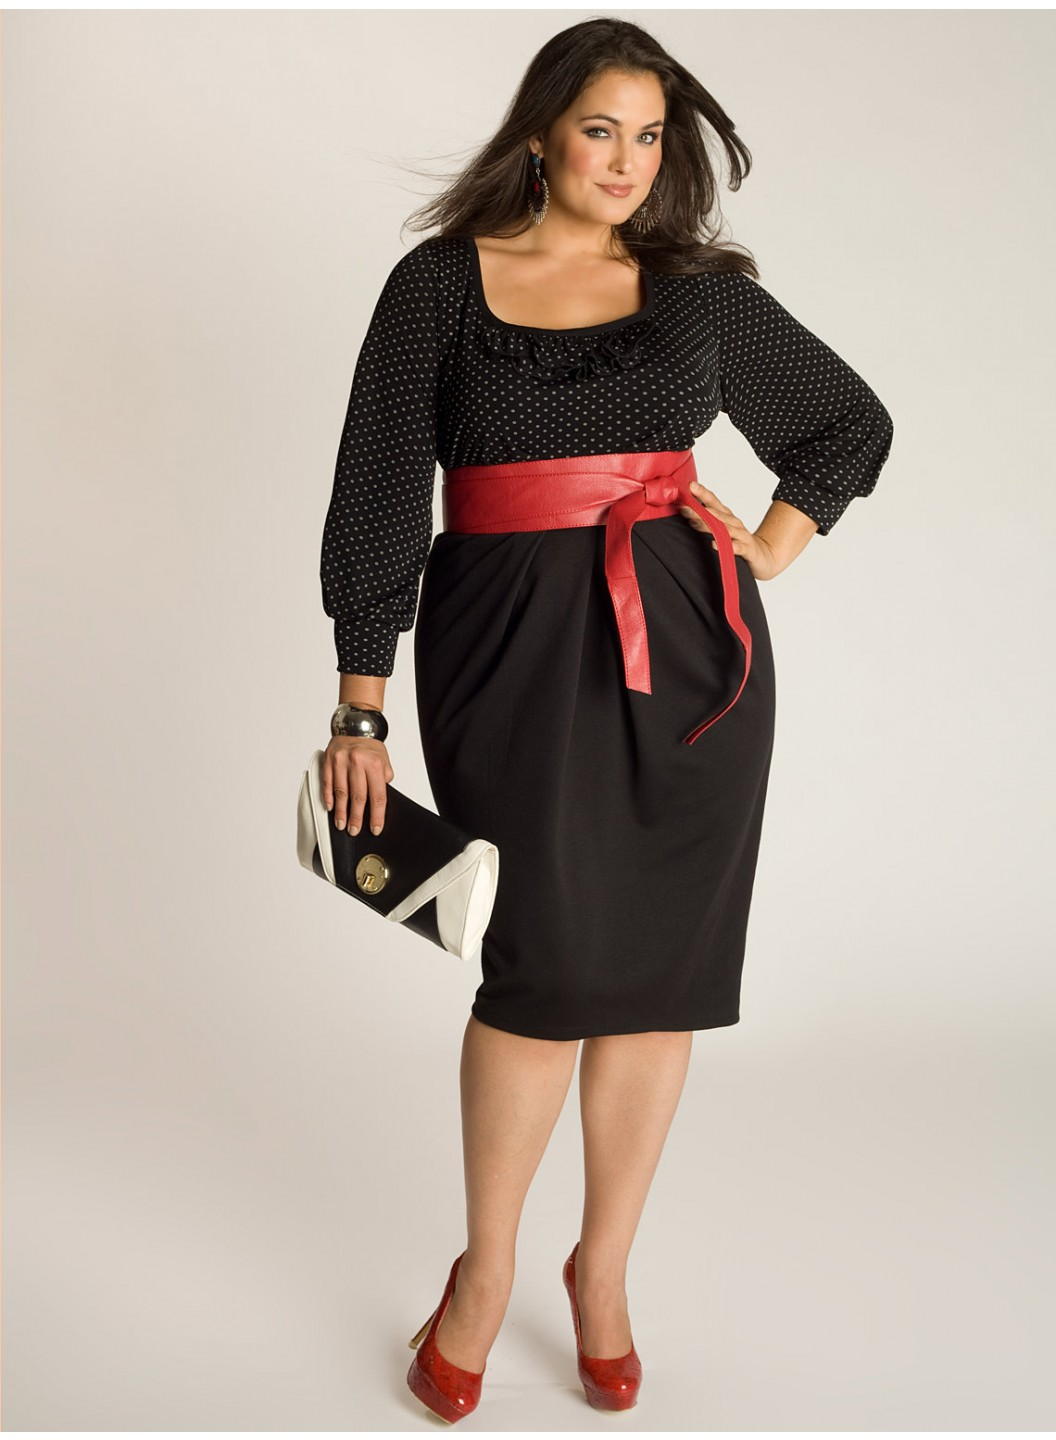 7a4a72ebf95 nicolasrechanik  Boutiques With Plus size clothes